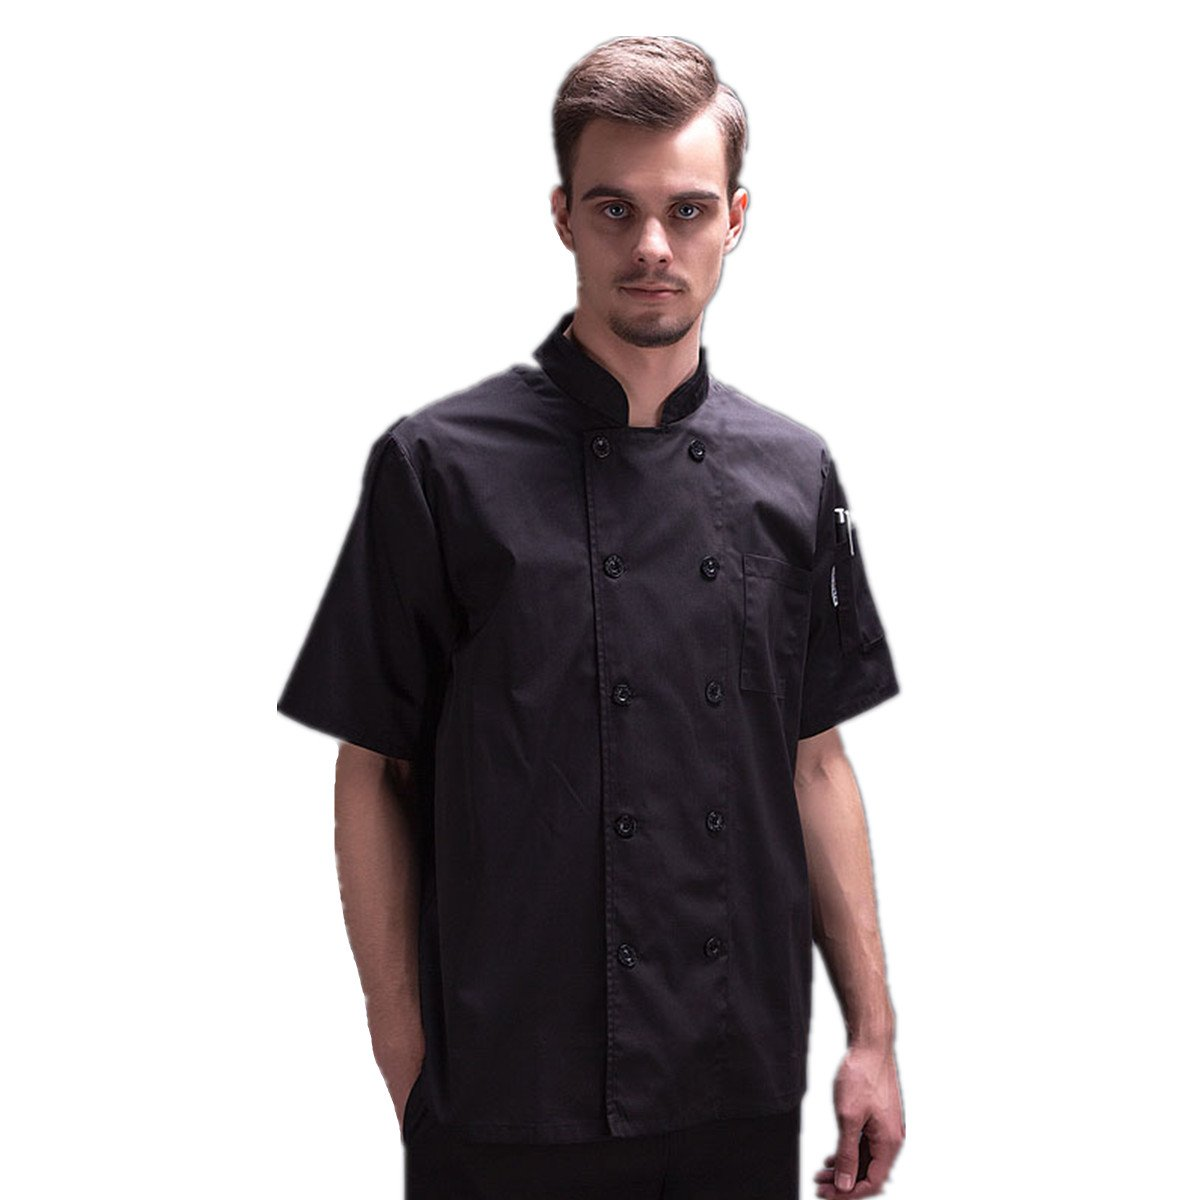 XINF Chef Uniform Short Sleeve Restaurant Work Dress Chef Jacket Double Breasted Chef Coat Summer by XINFU (Image #1)